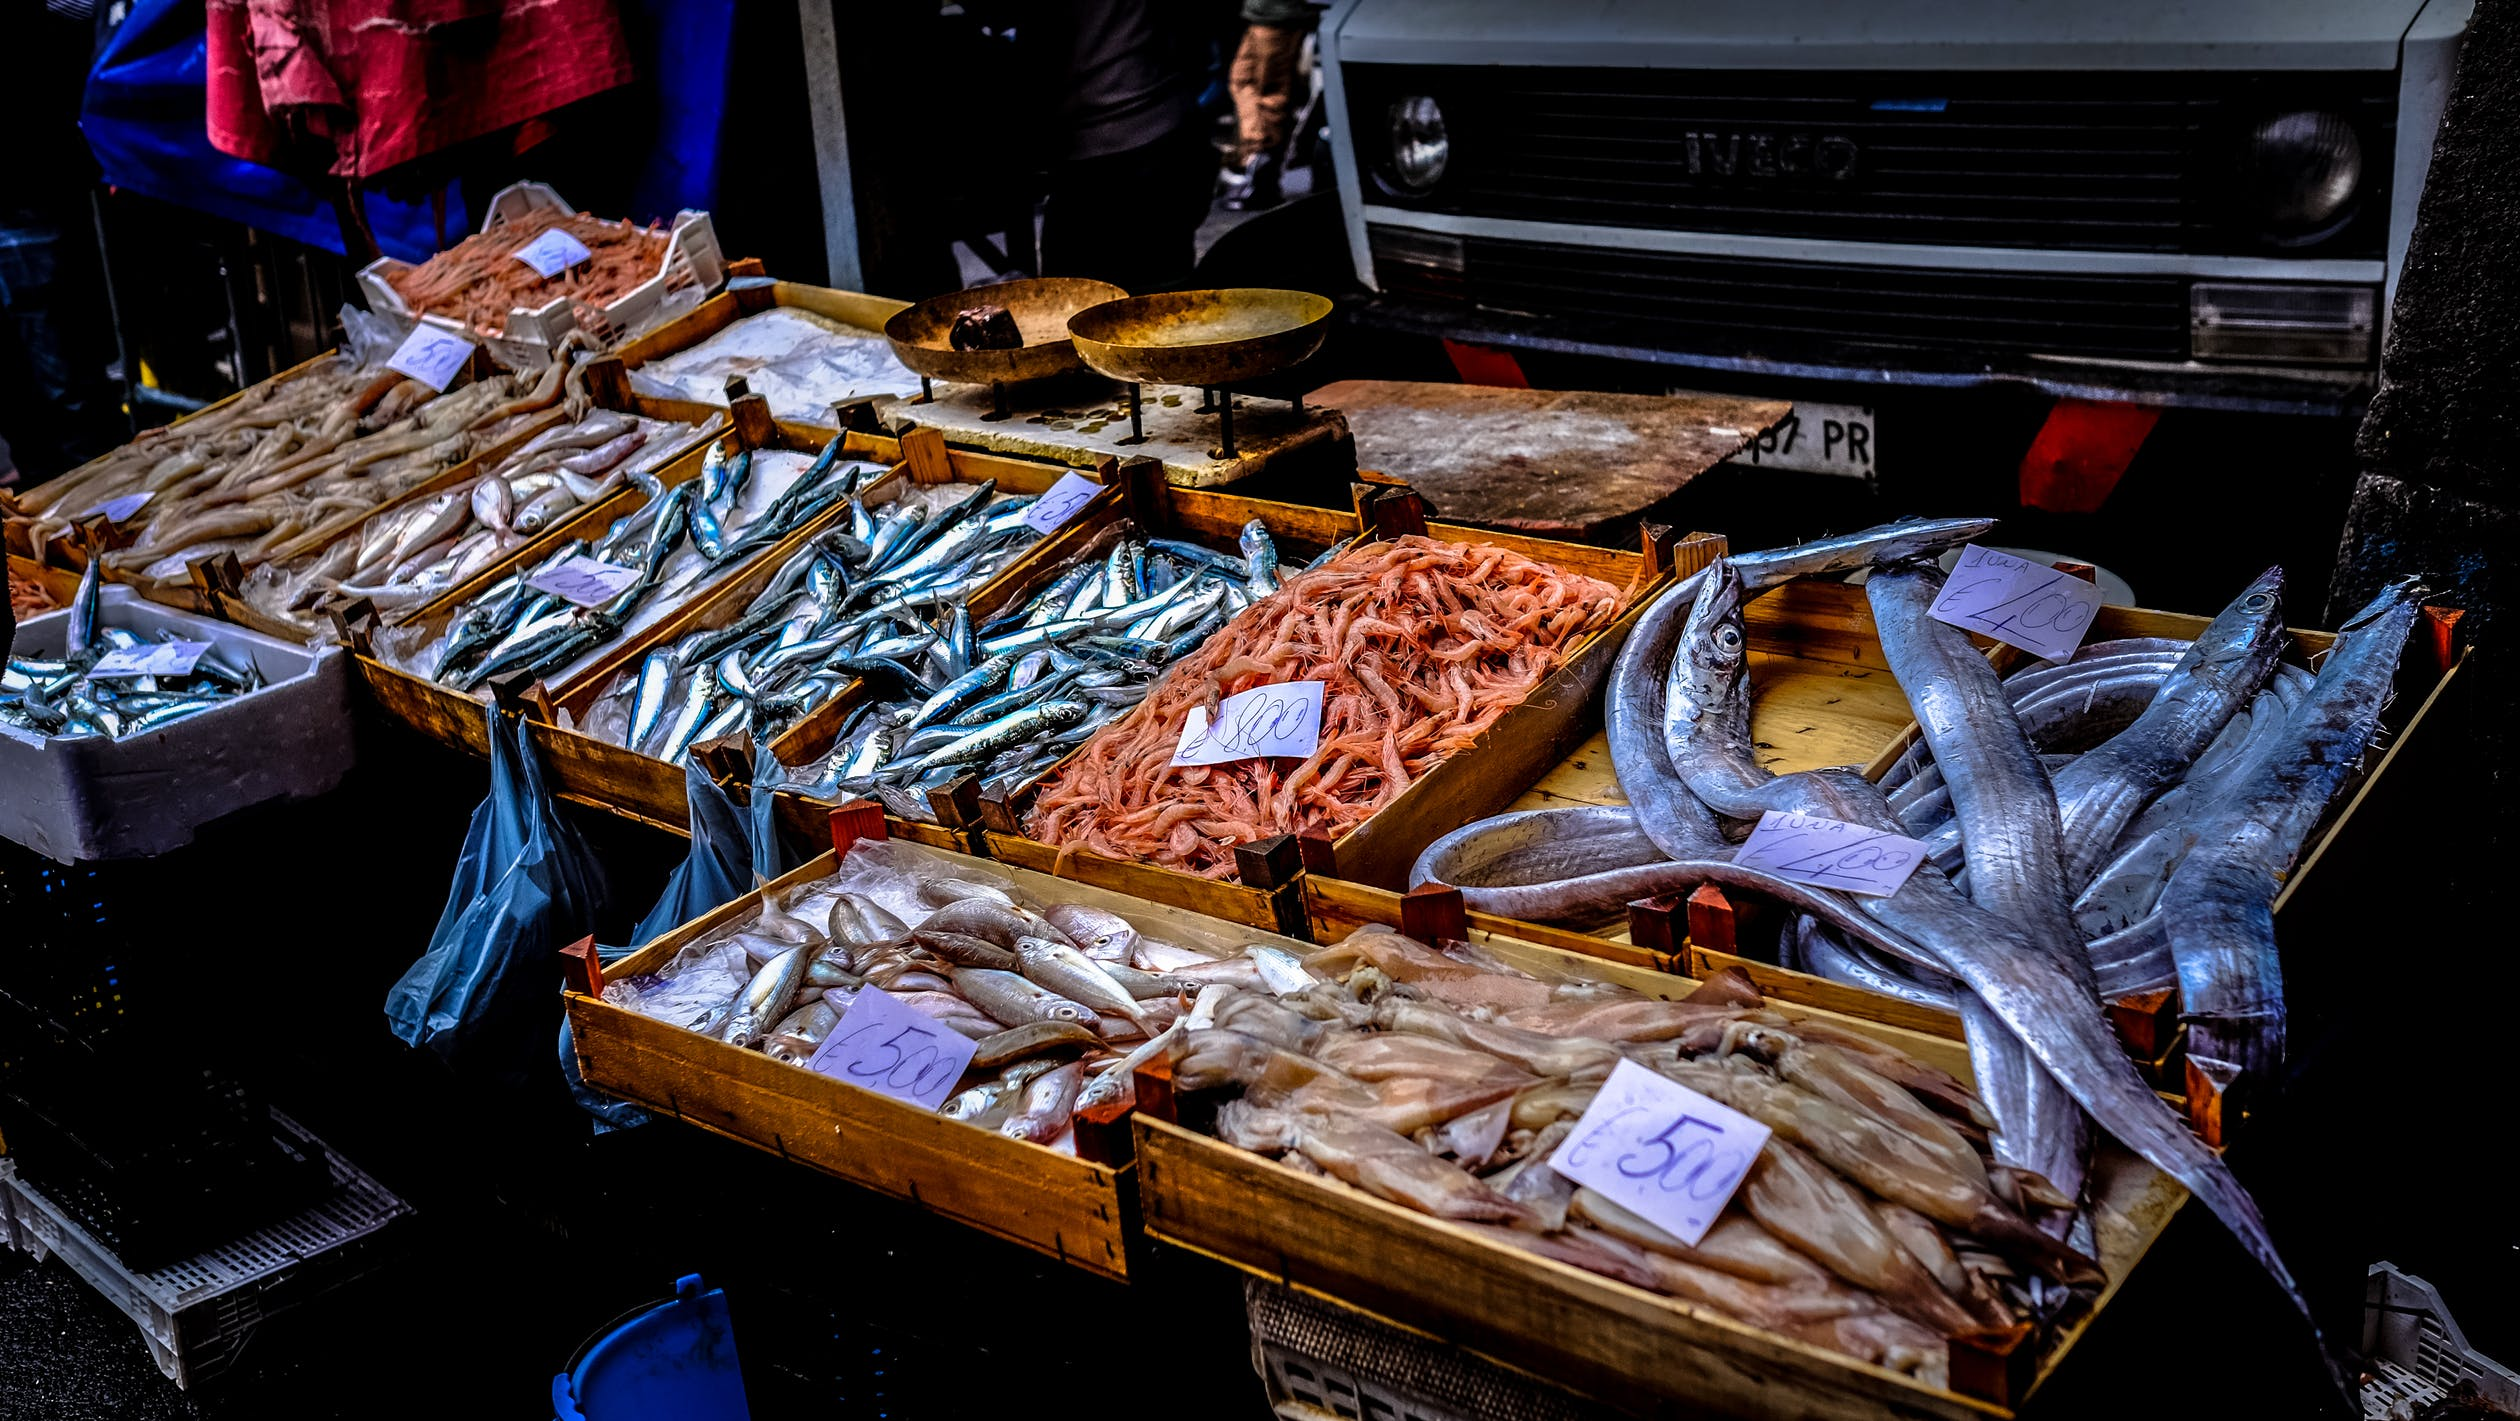 A market stall offering a variety of fresh raw seafood